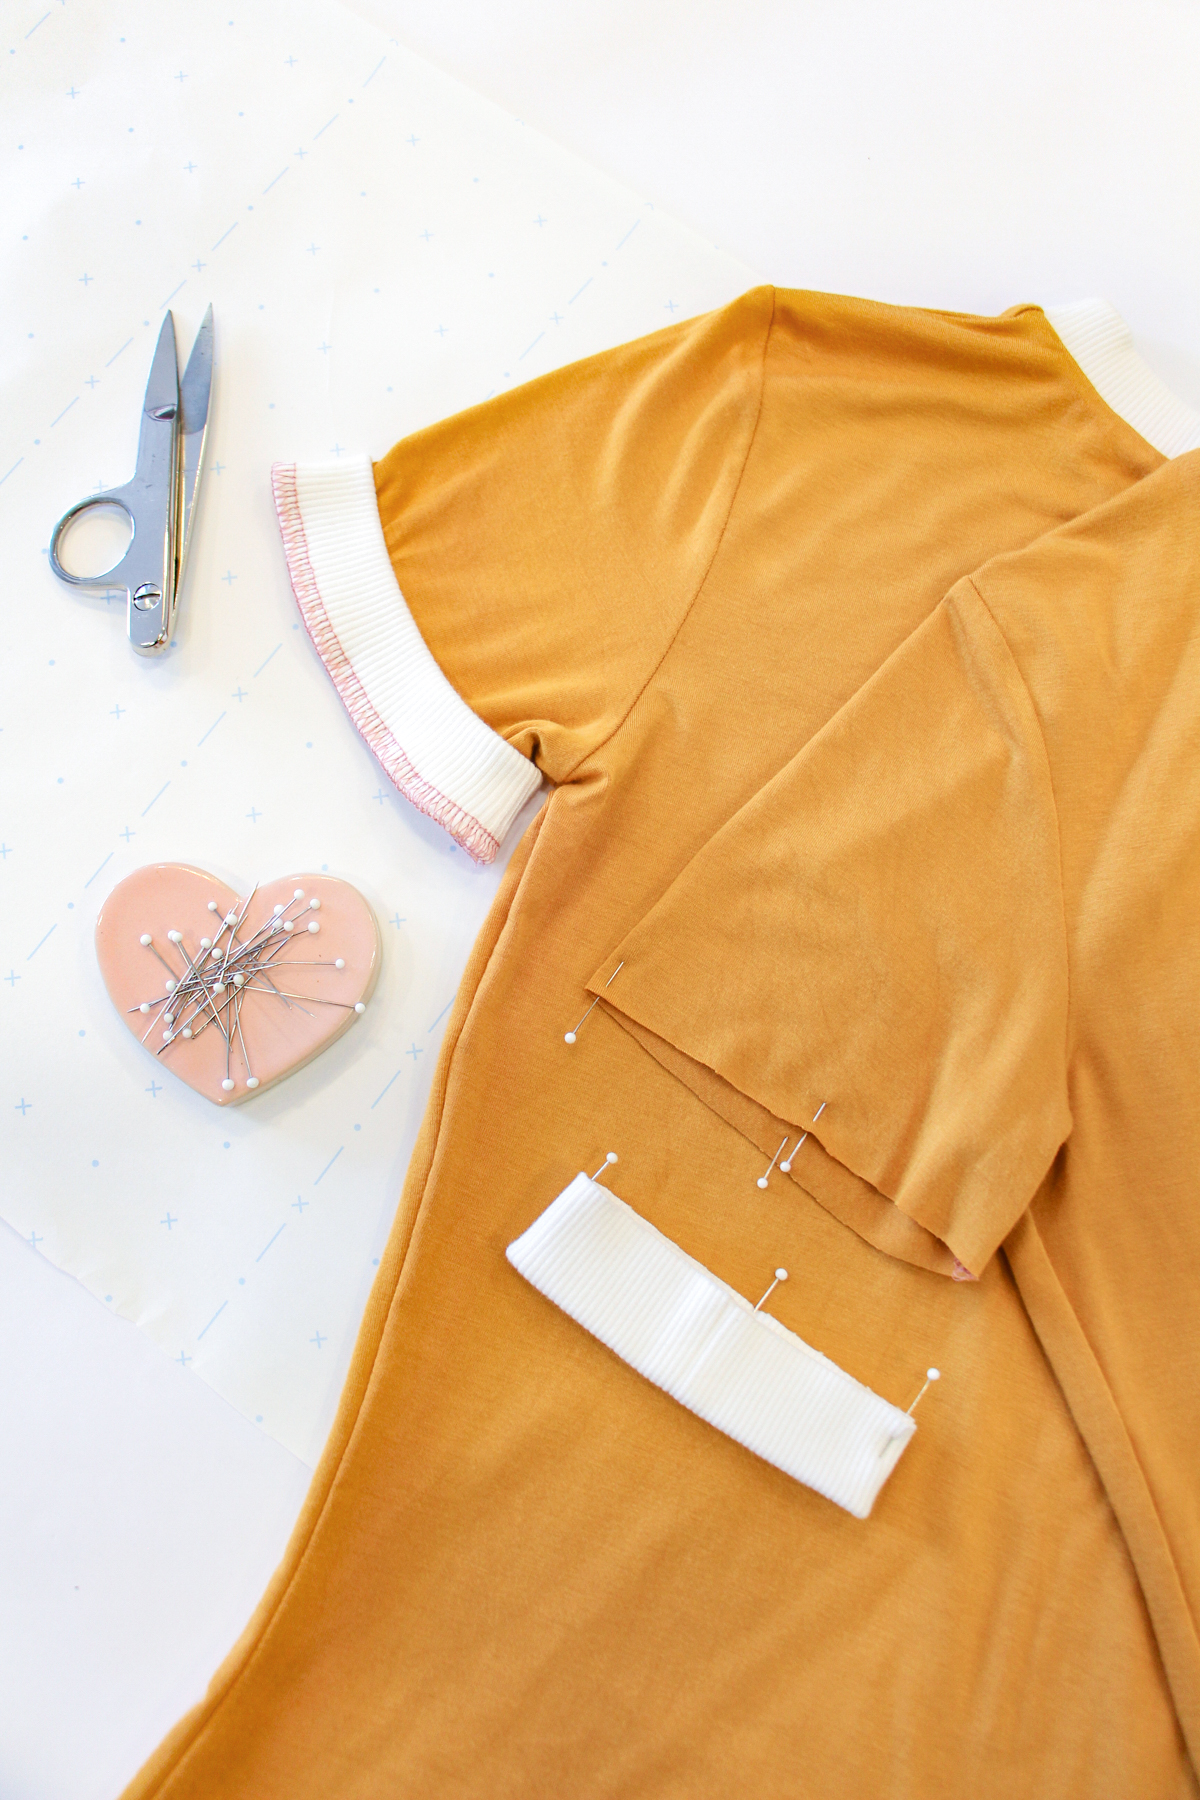 How To Make A Rowan Ringer Tee - Method 1 - Sleeve Bands